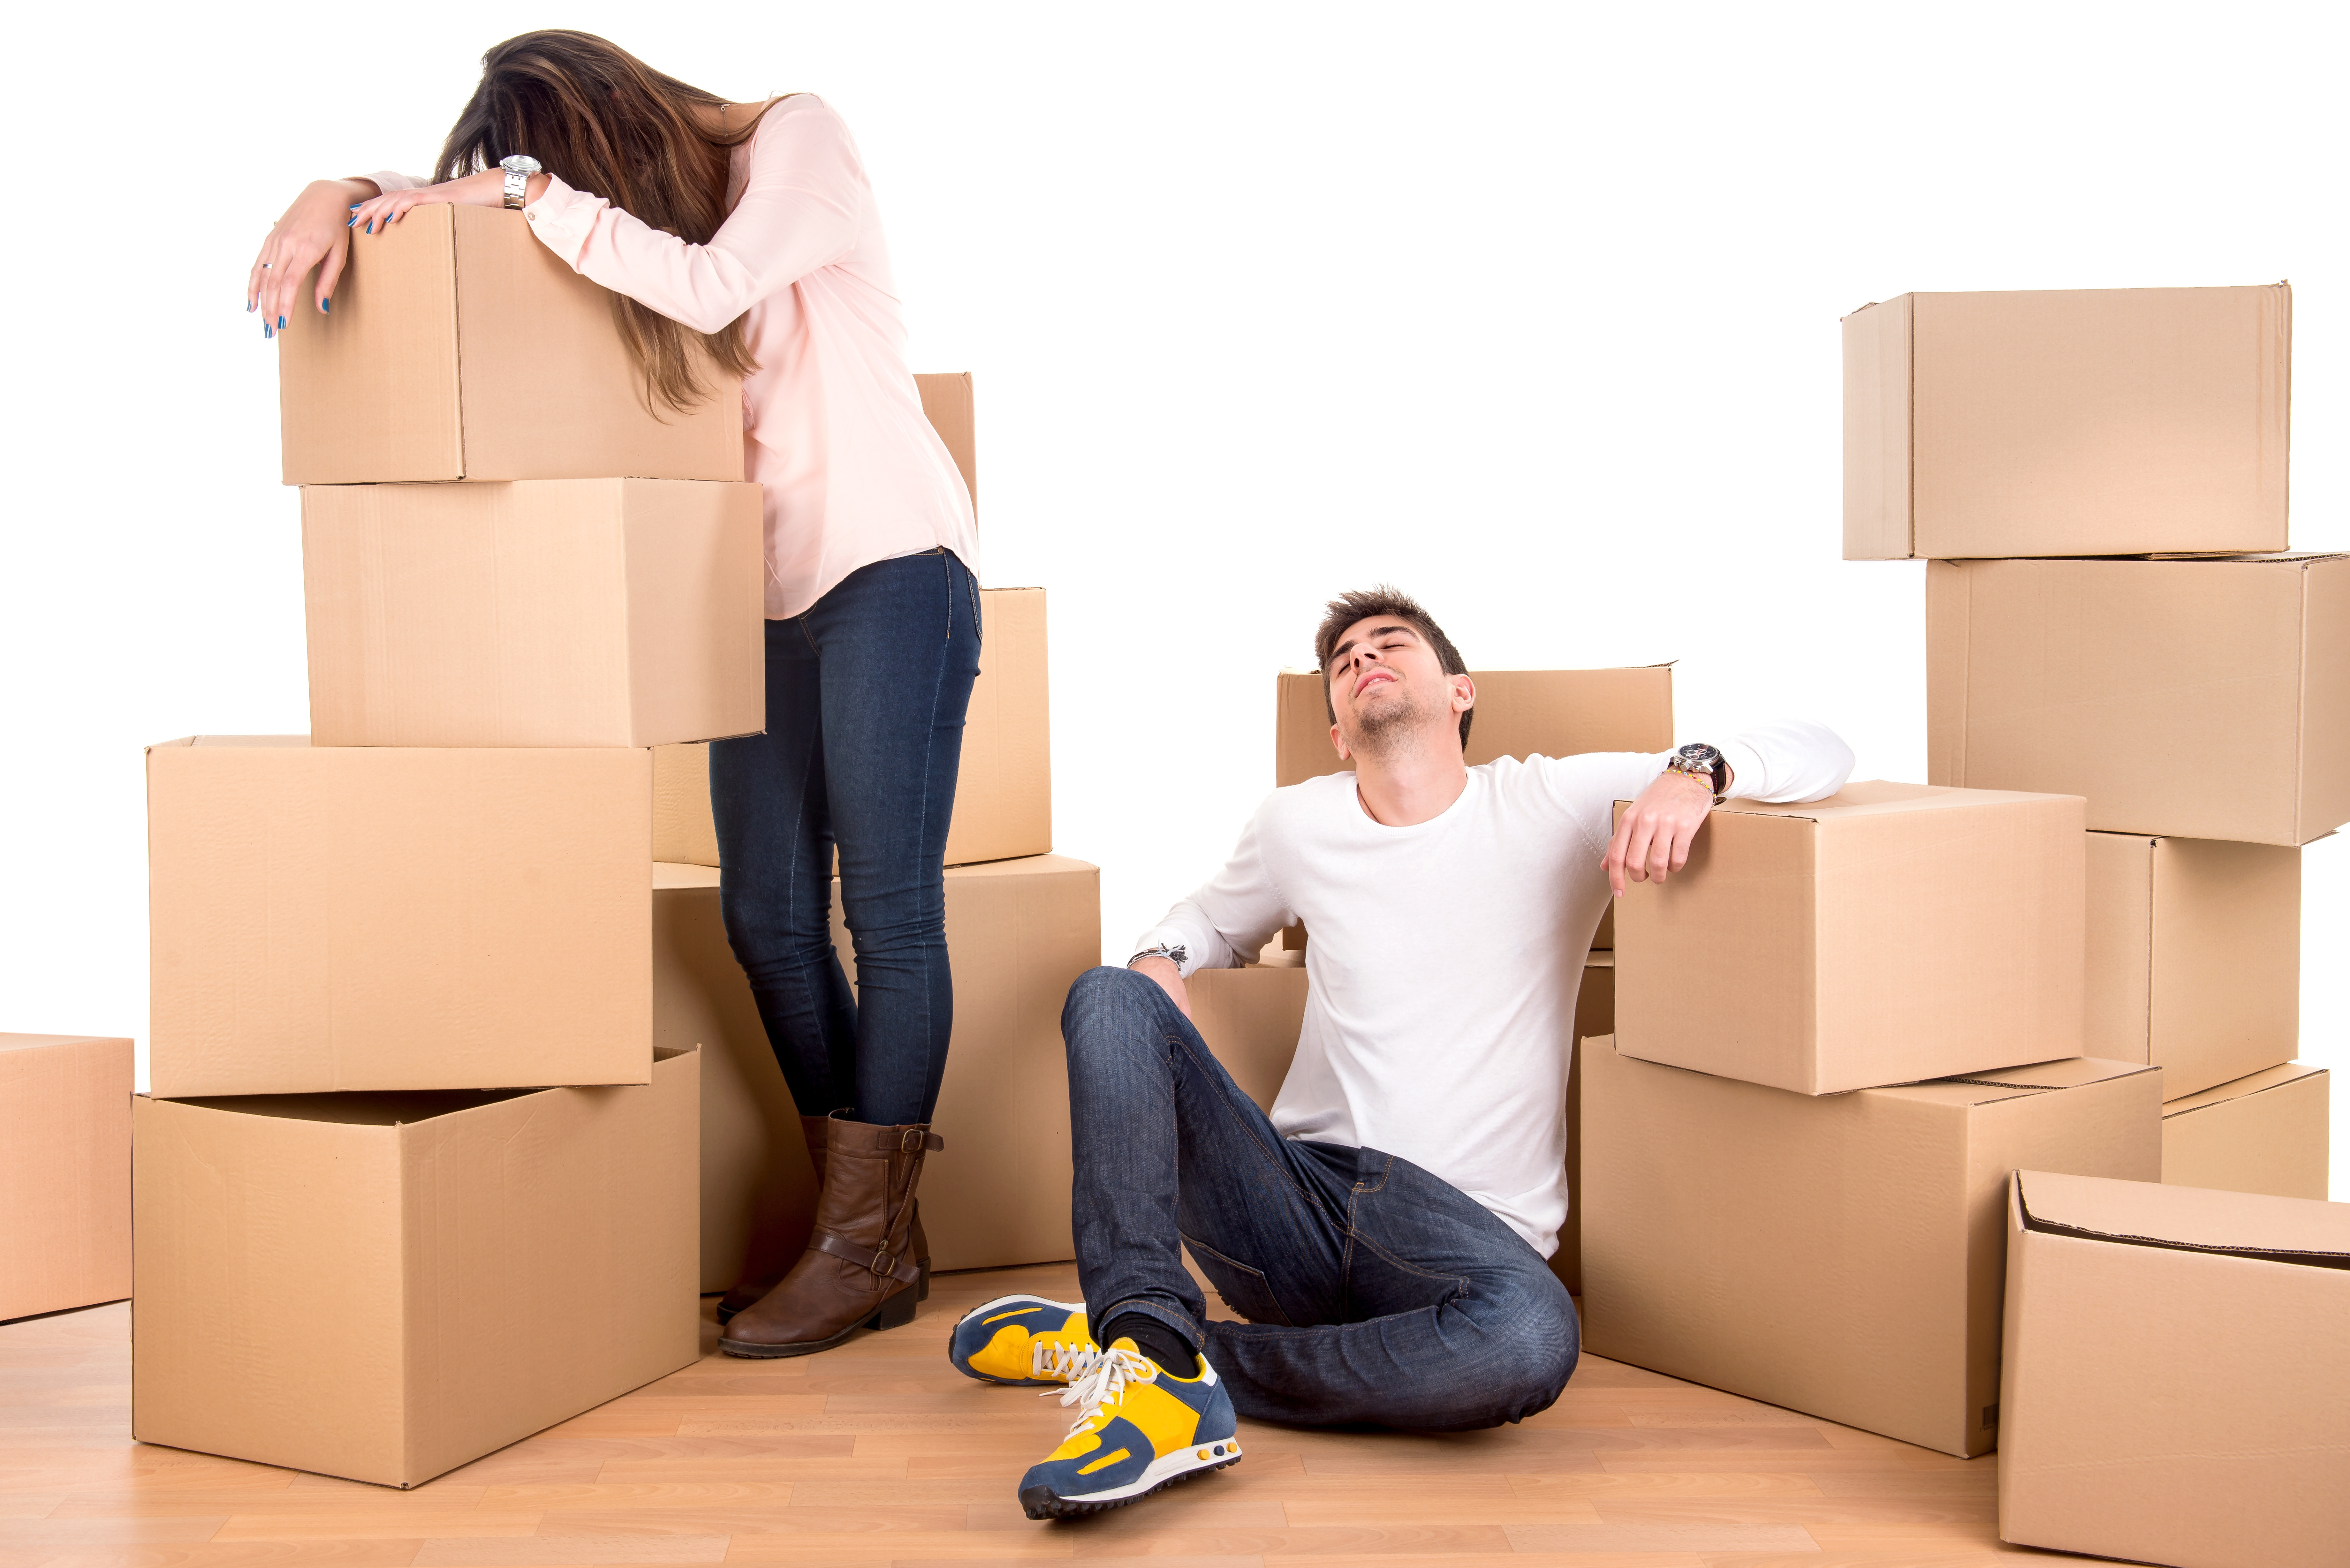 tired_couple_moving_boxes.jpg